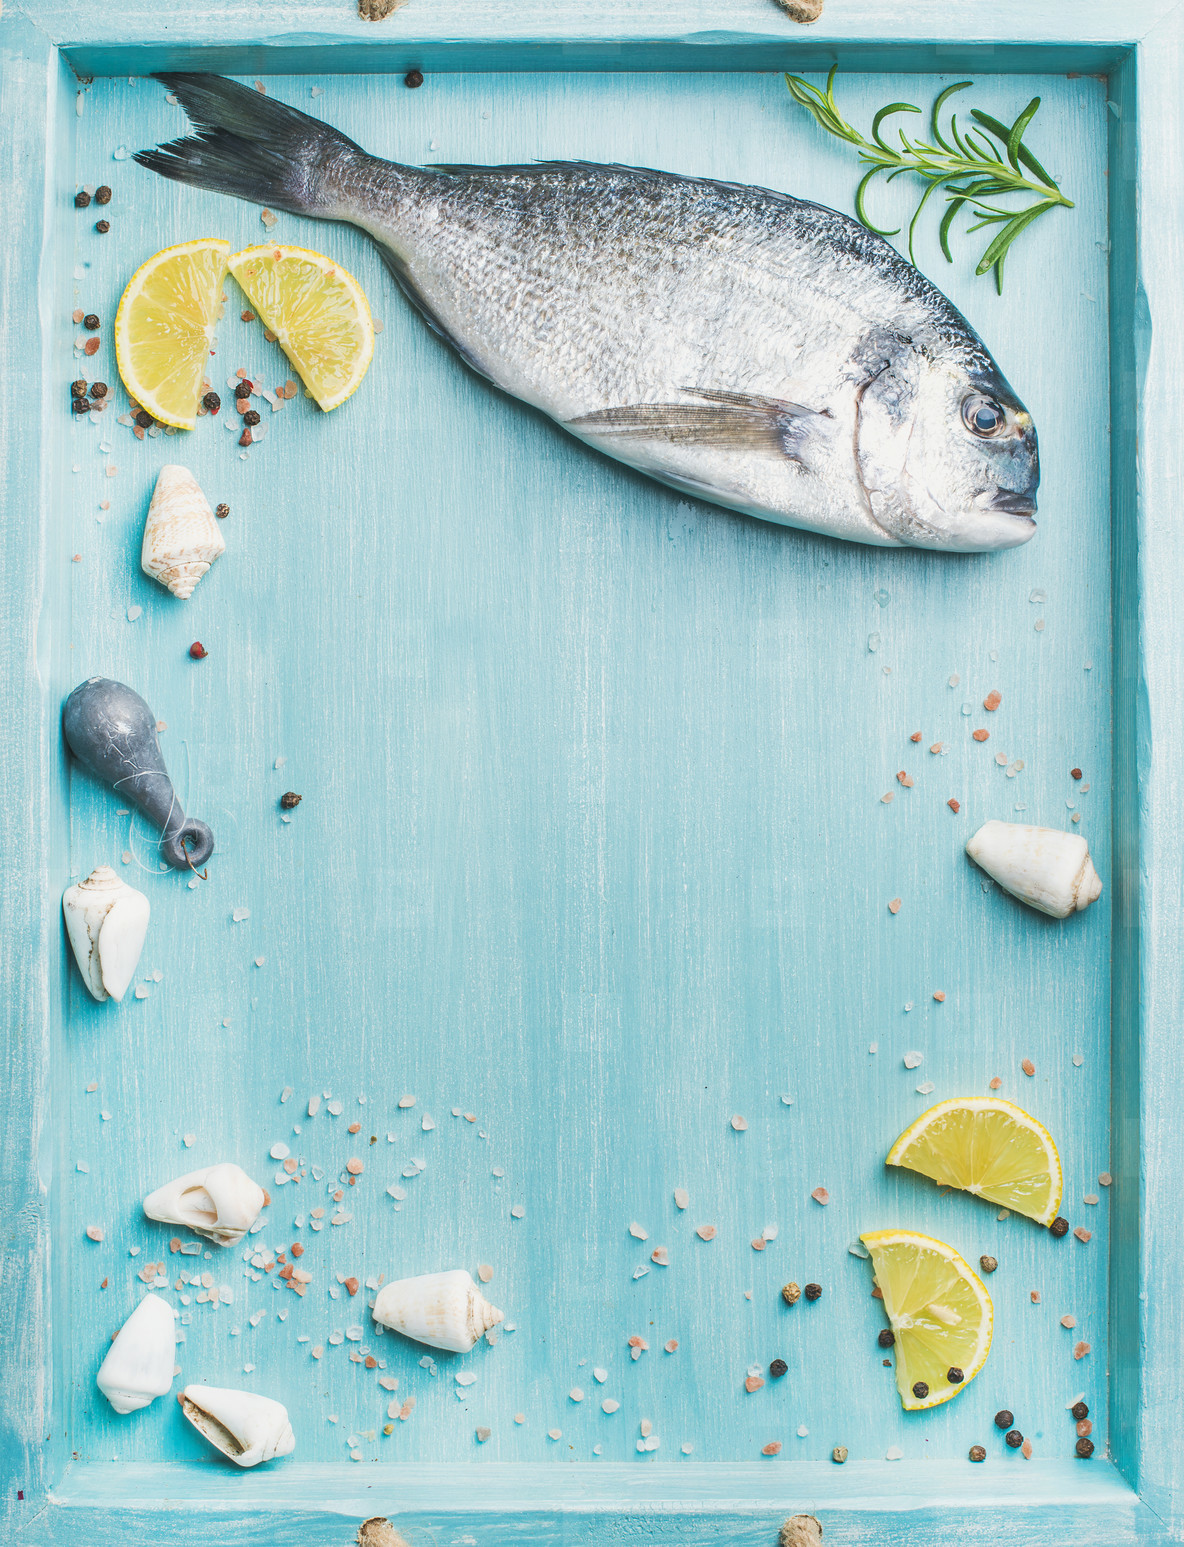 Fresh Sea bream raw uncooked fish with seasoning  copy space